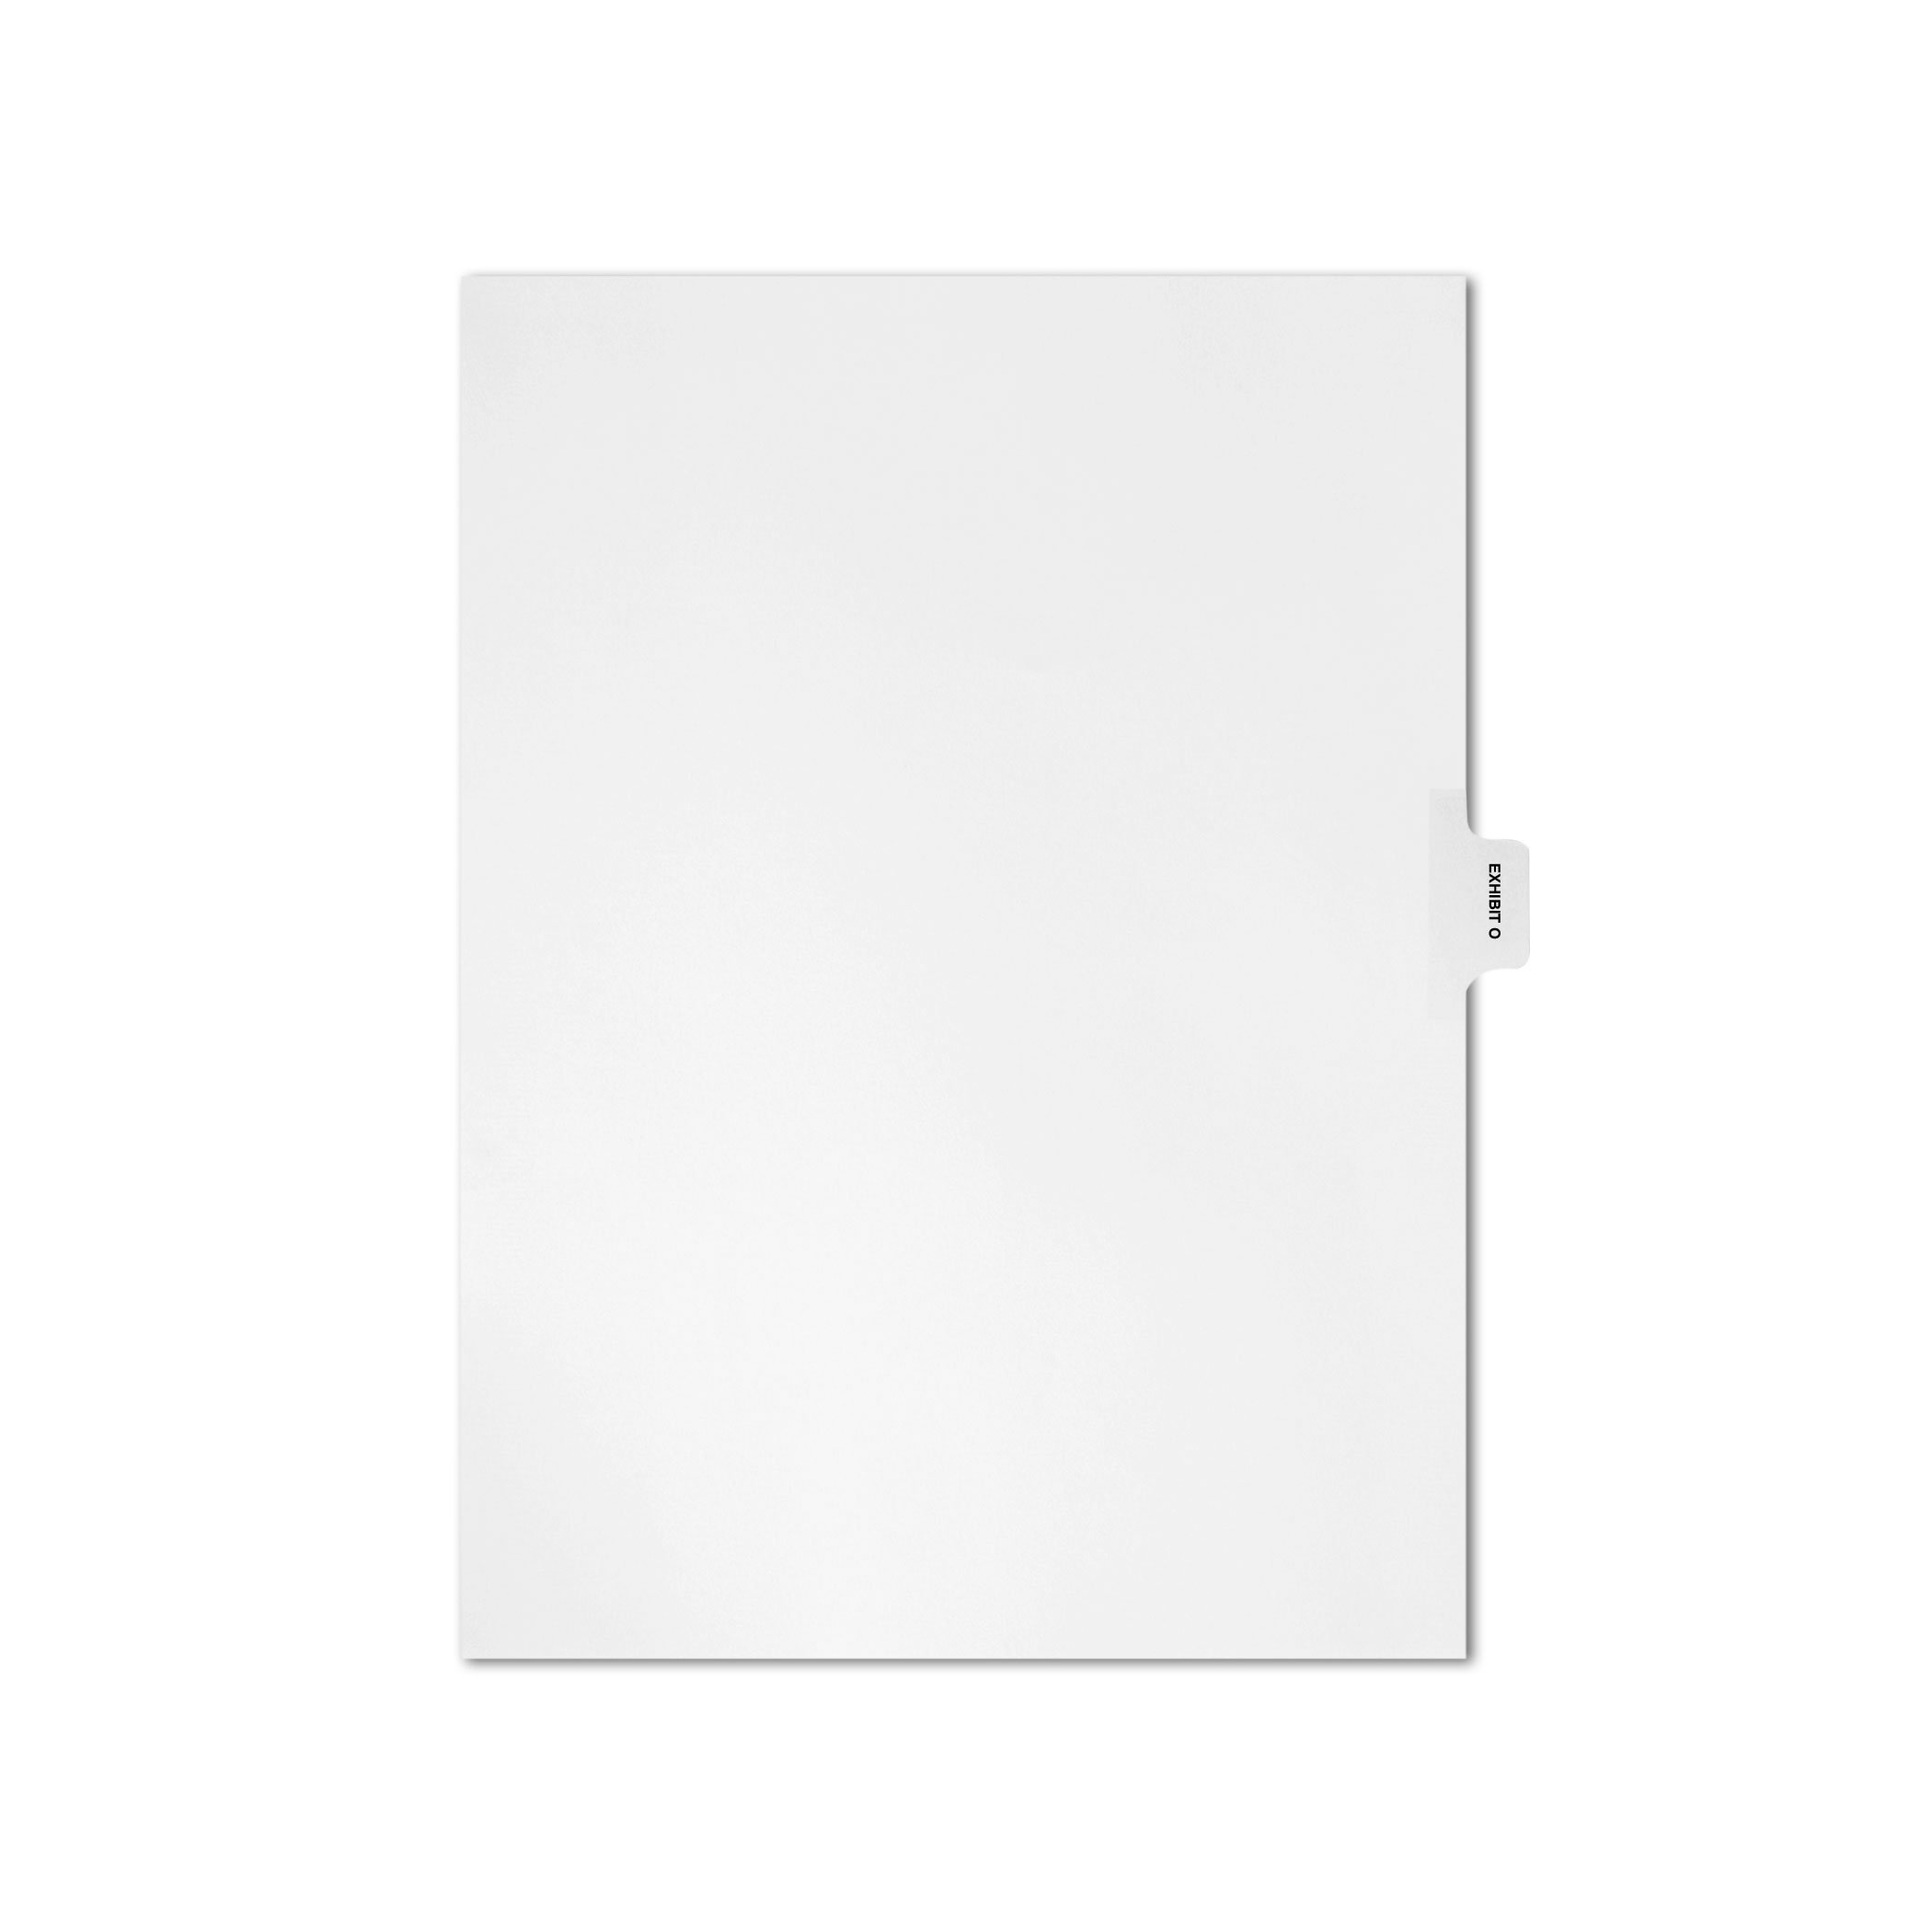 AMZfiling Individual Legal Index Tab Dividers, Compatible with Avery- Exhibit O, Side Tabs, Letter Size, White, Position 5 (25 Sheets/pkg)